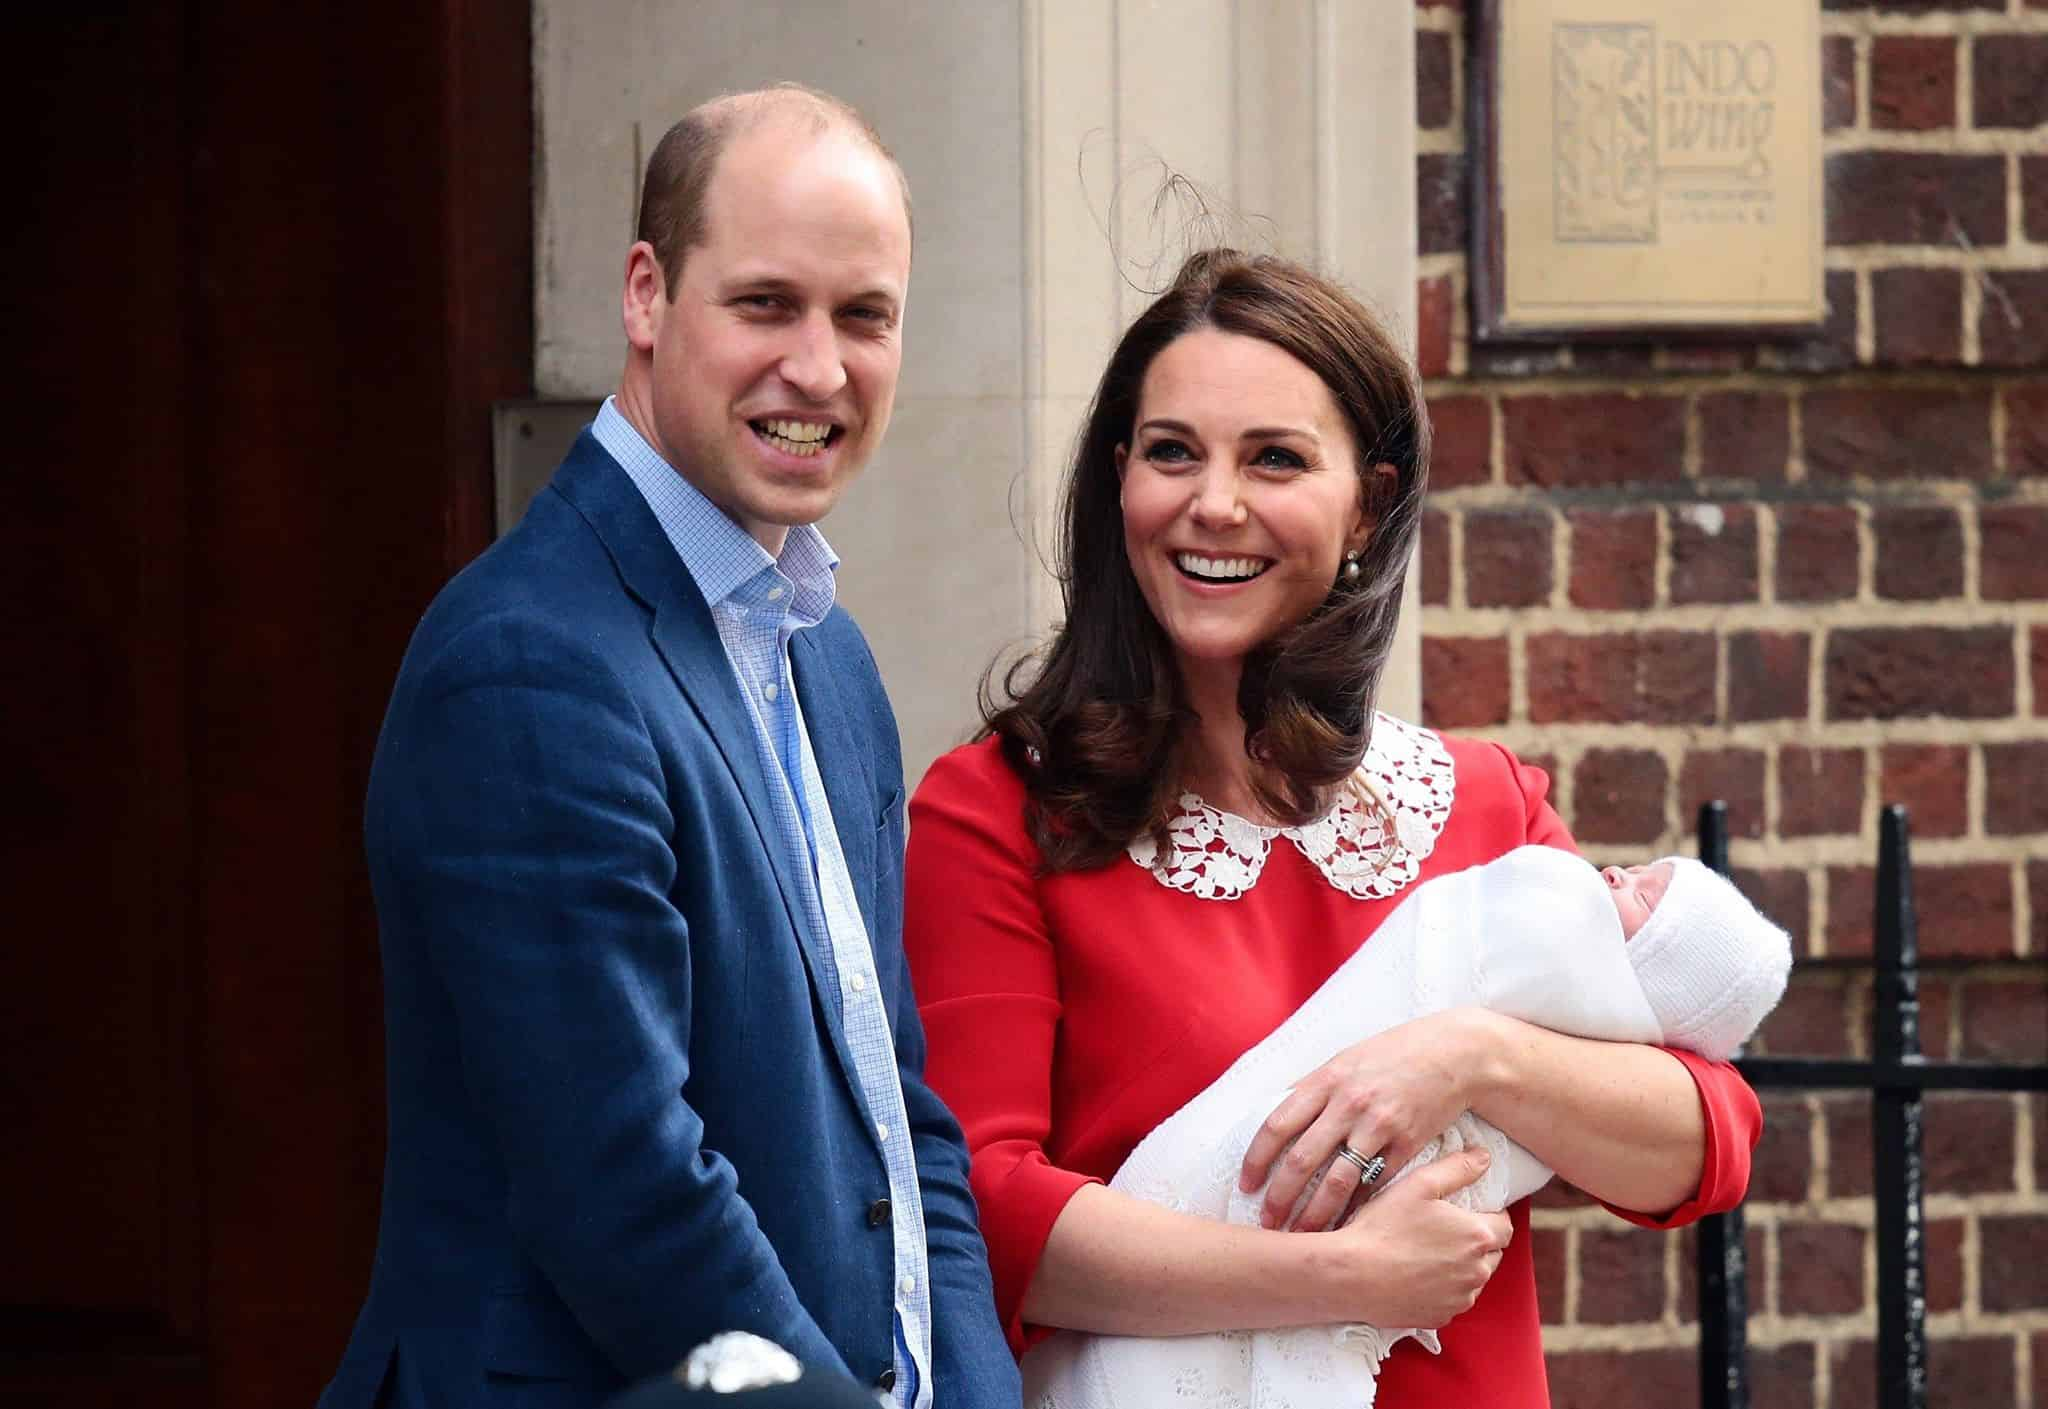 Kate Middleton And Prince William Show Royal Baby No. 3